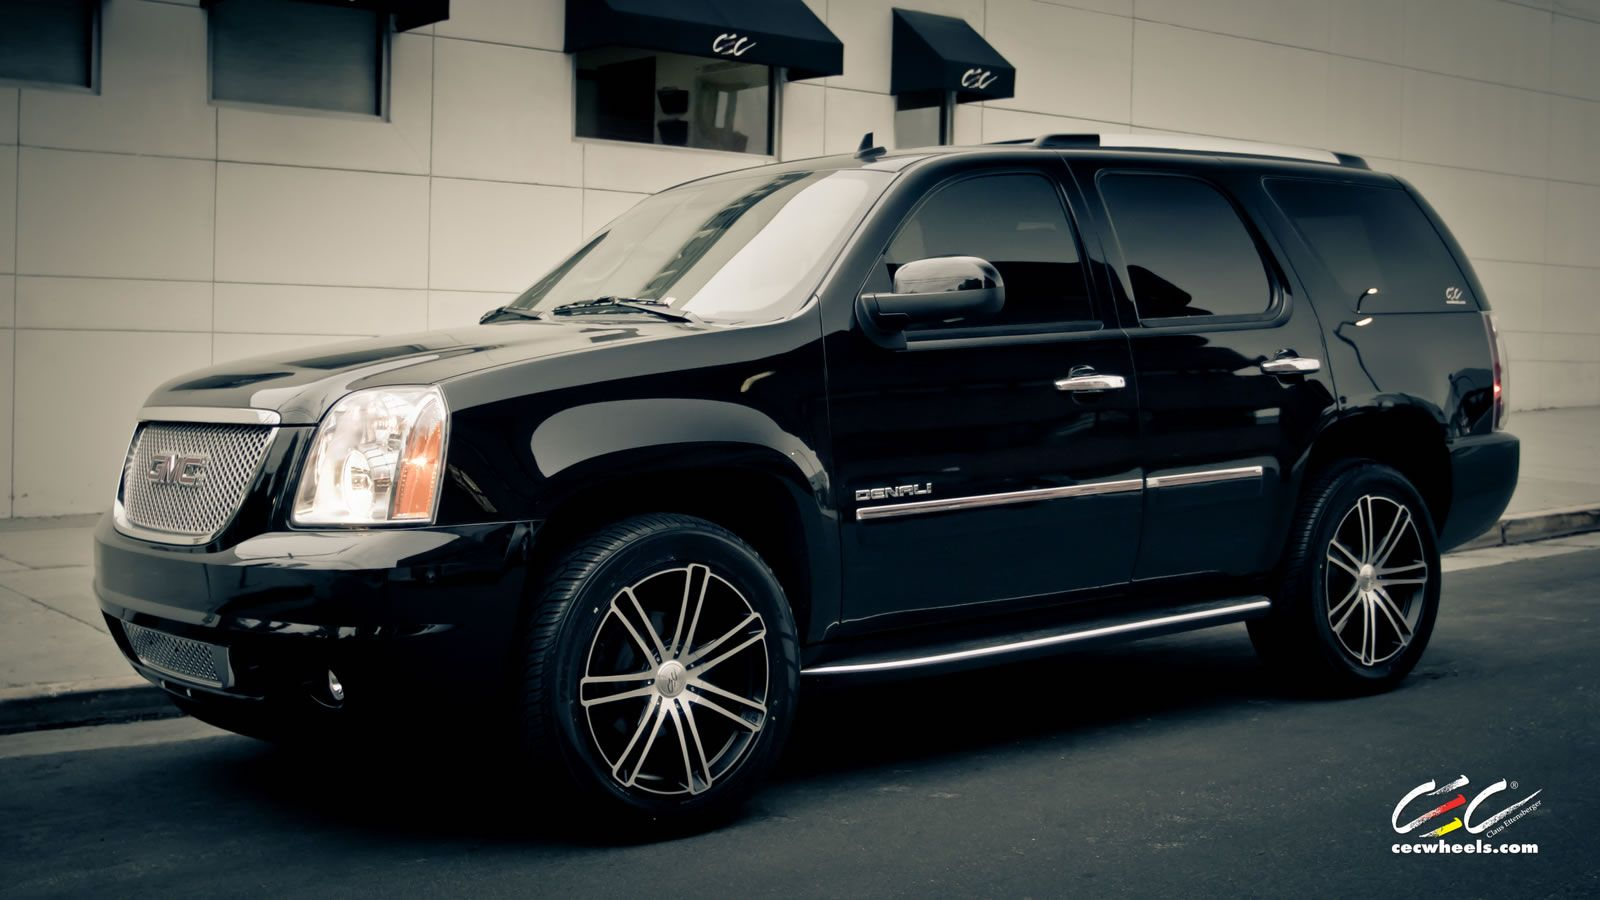 Gmc yukon denali with 22